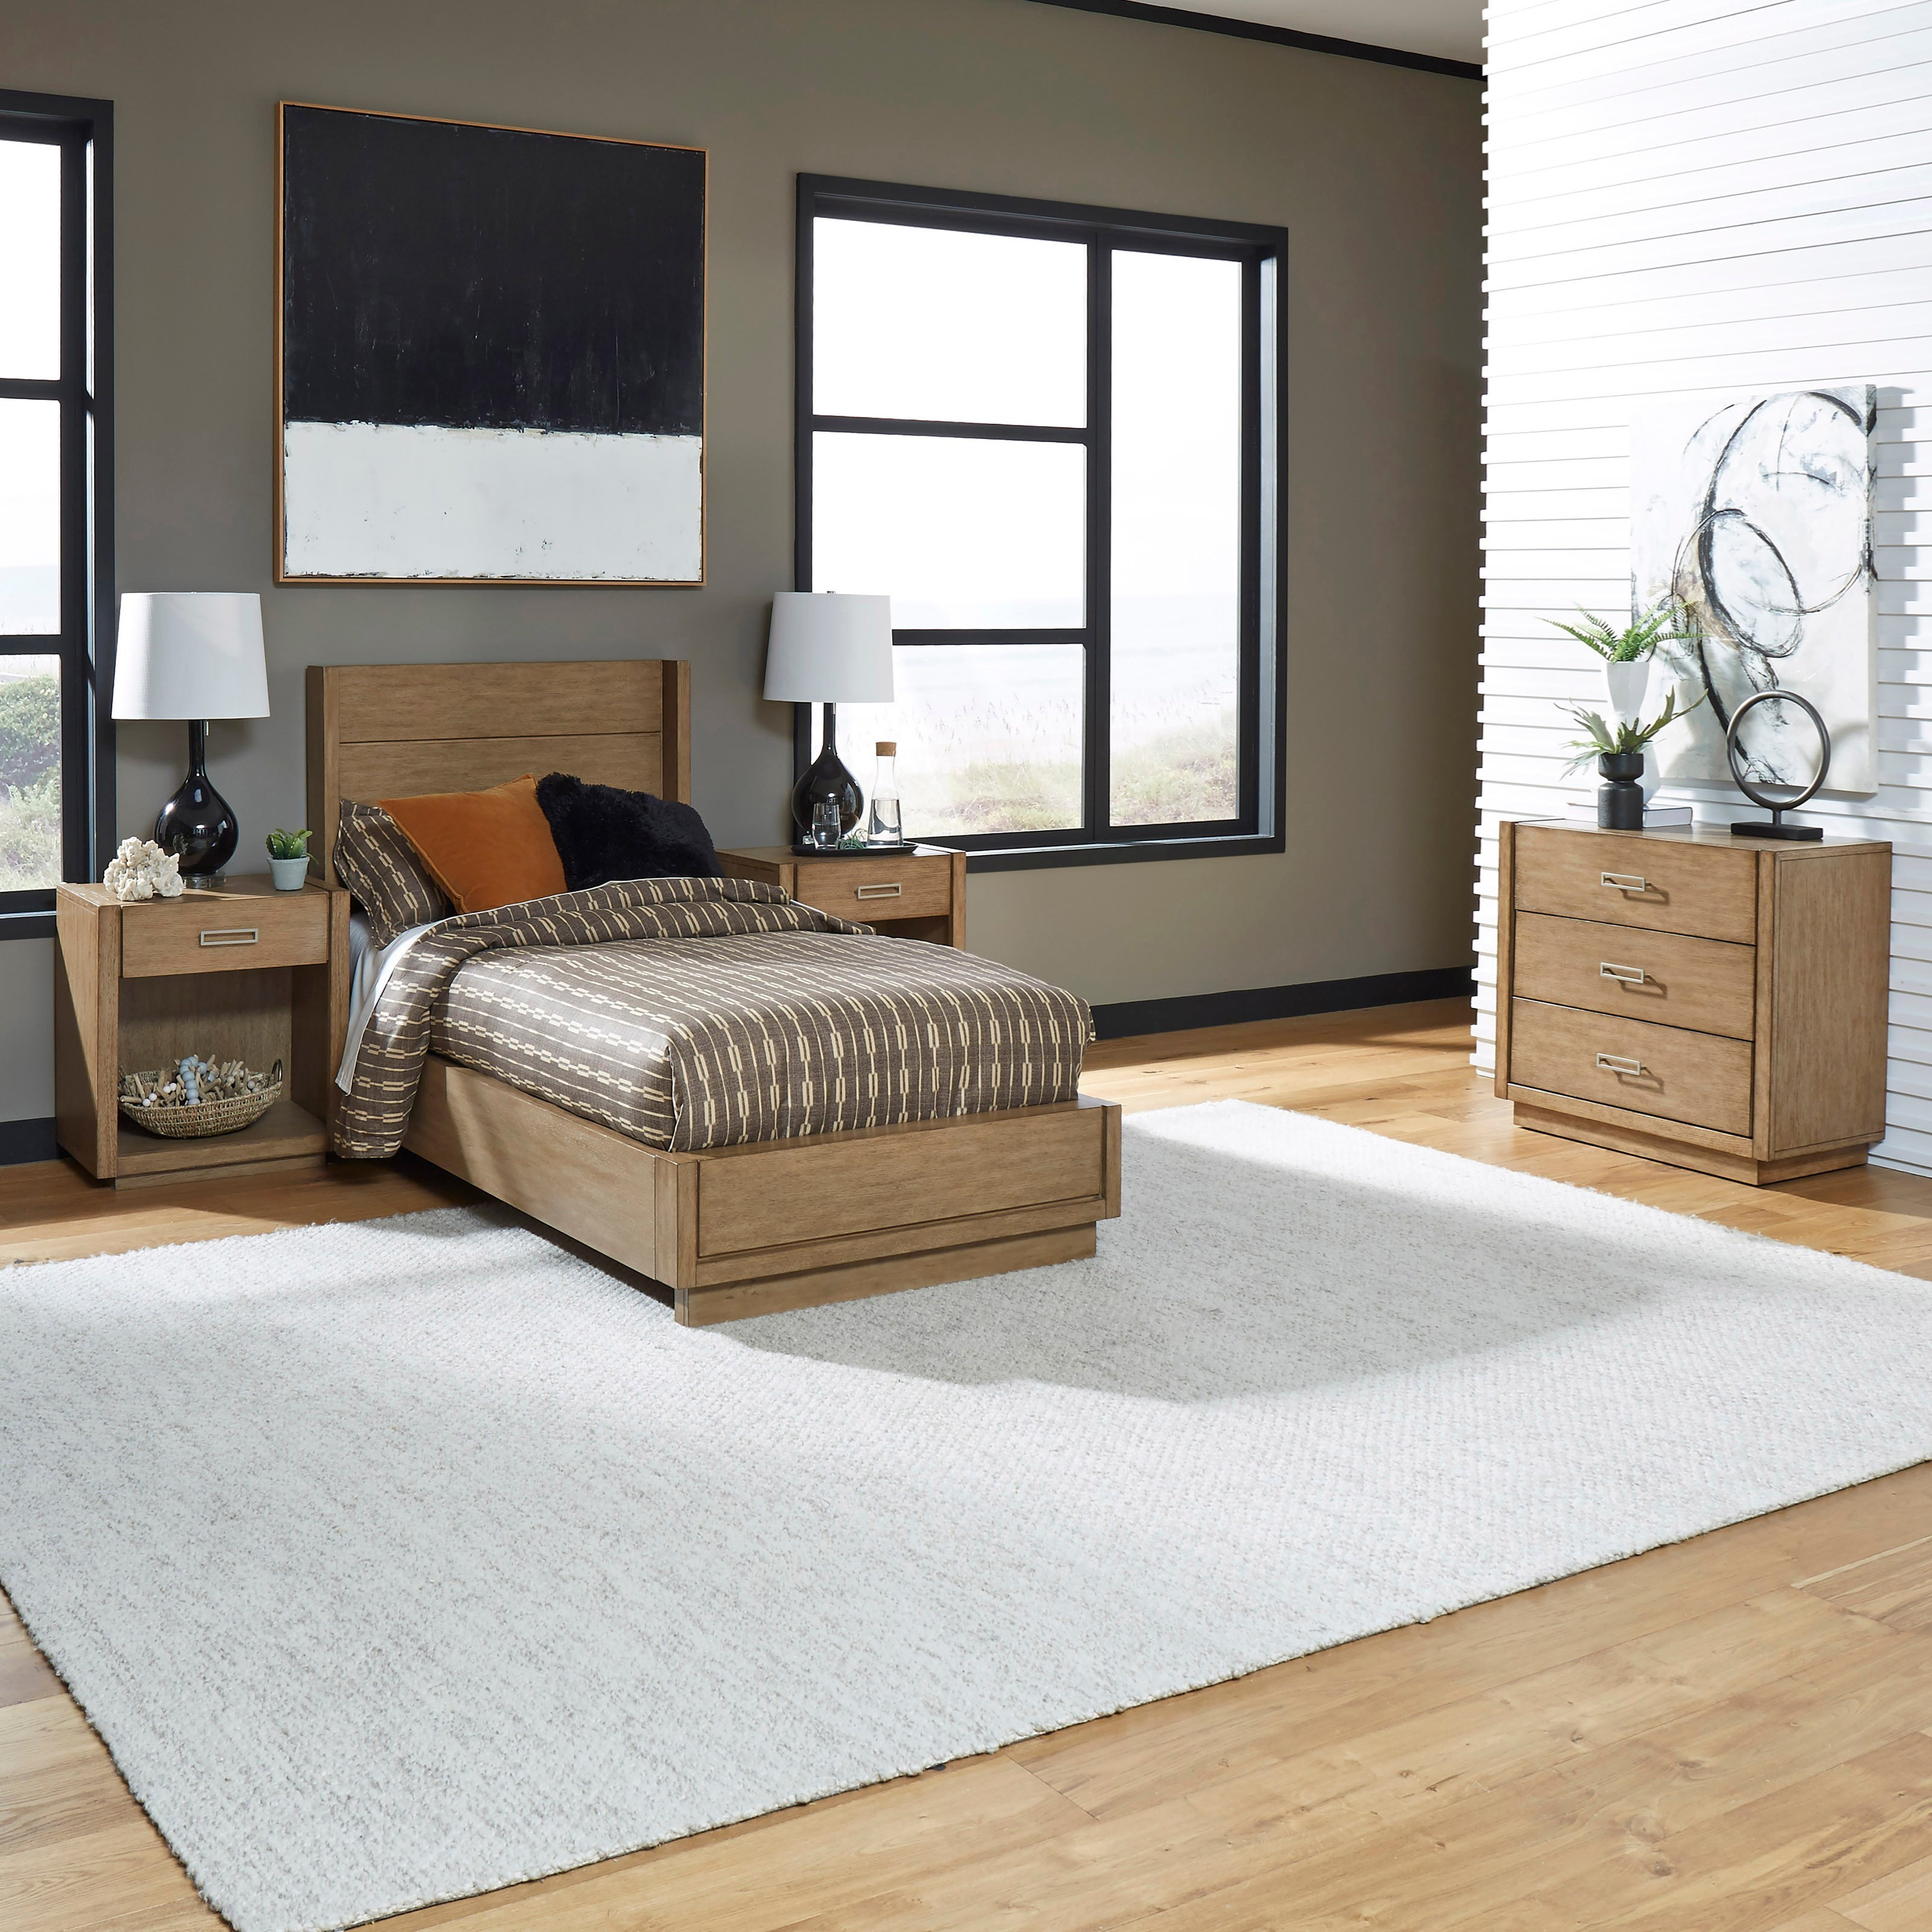 Big Sur Twin Bedroom Group by Homestyles at Value City Furniture